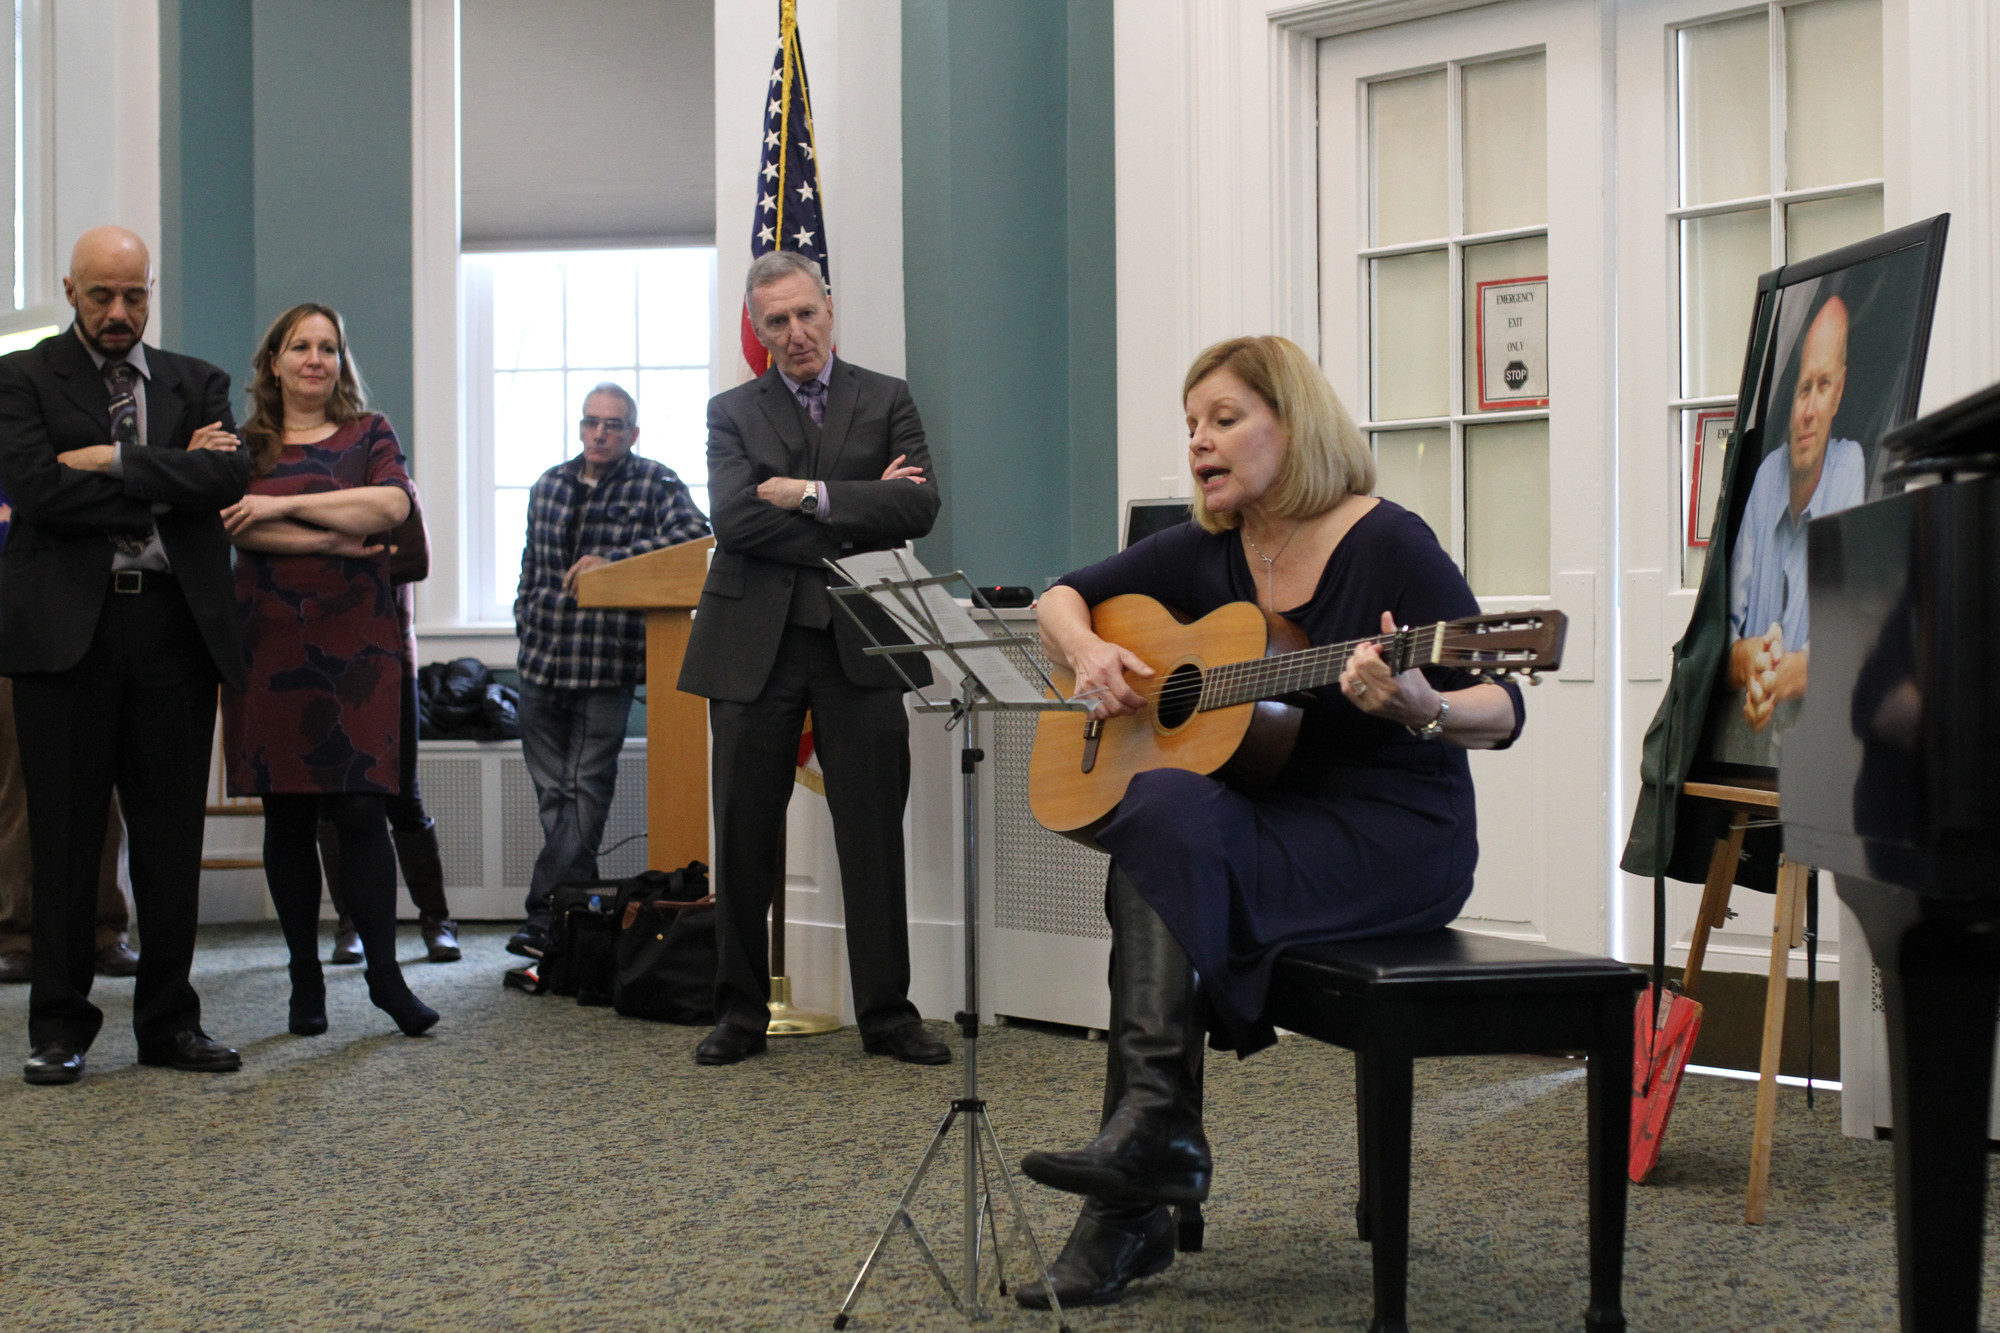 Kerry Koehler, a retired East Rockaway High School teacher and a friend of Bishop's for over 30 years, performed an original song in memory of her late friend.